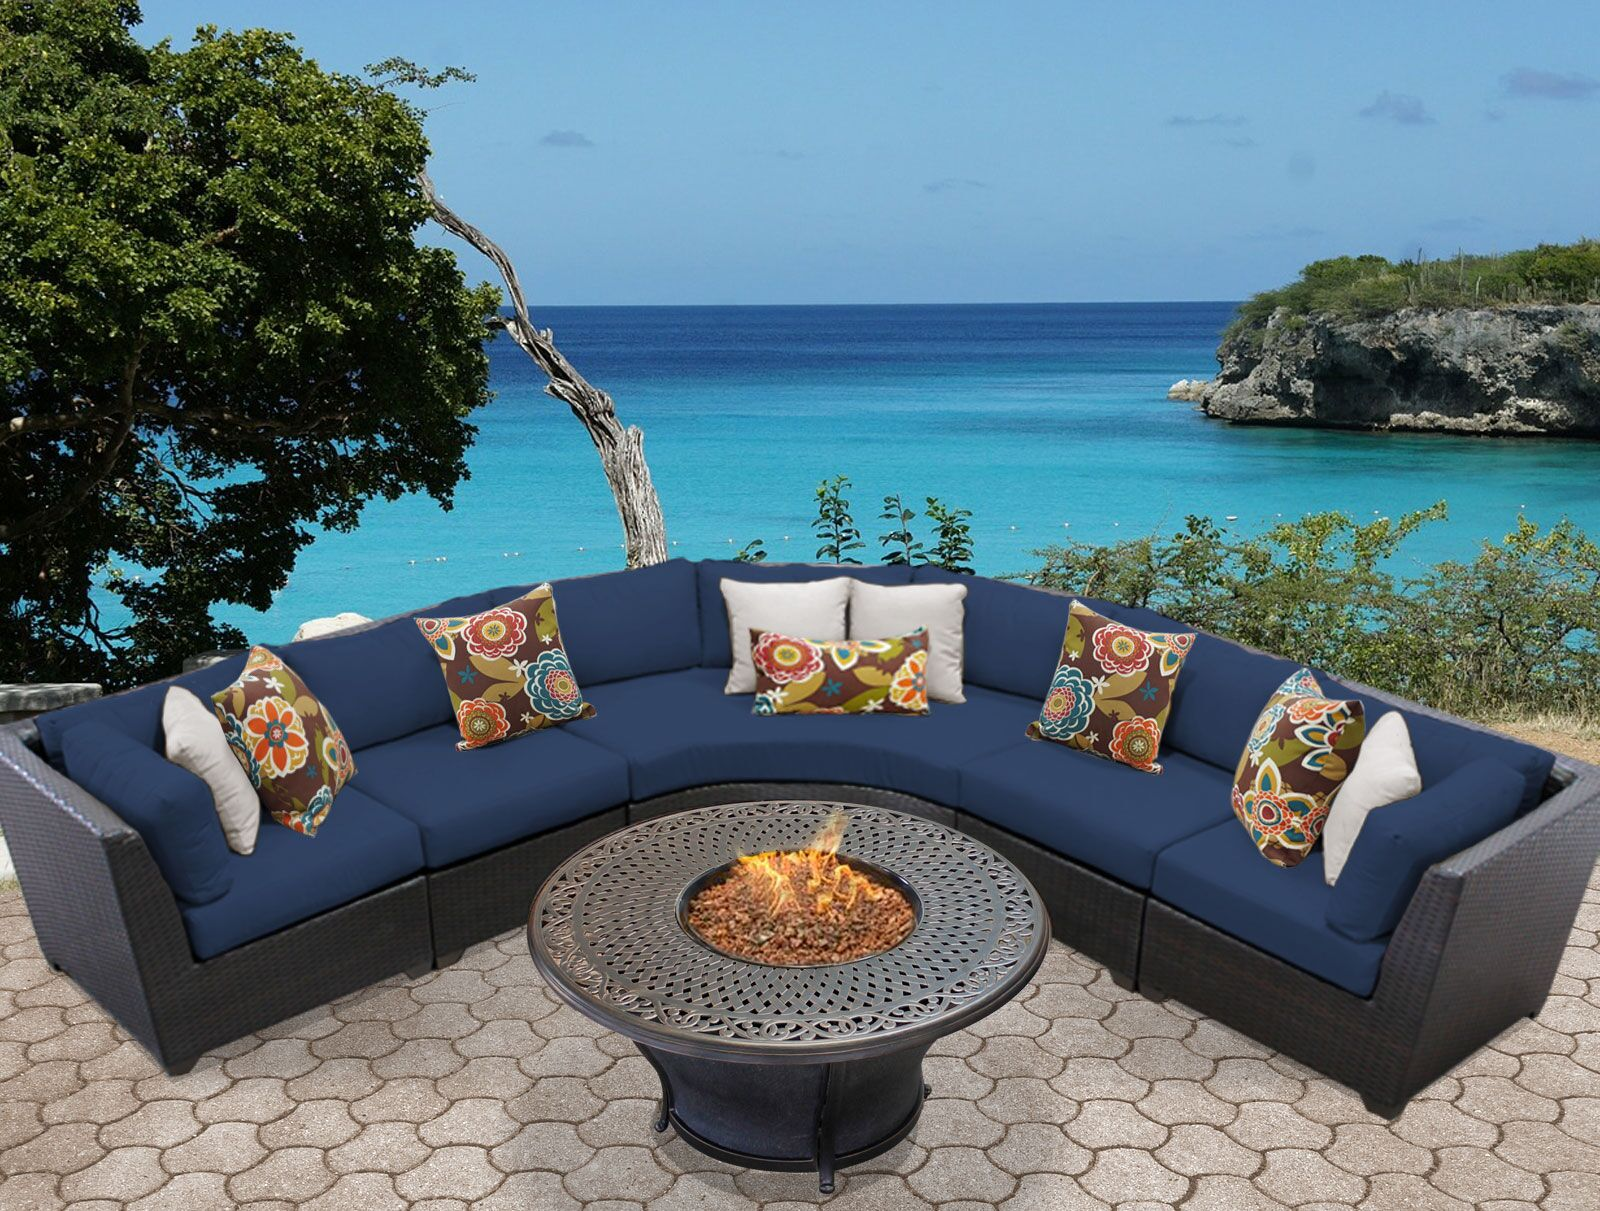 Barbados 6 Piece Sectional Set with Cushions Color: Navy